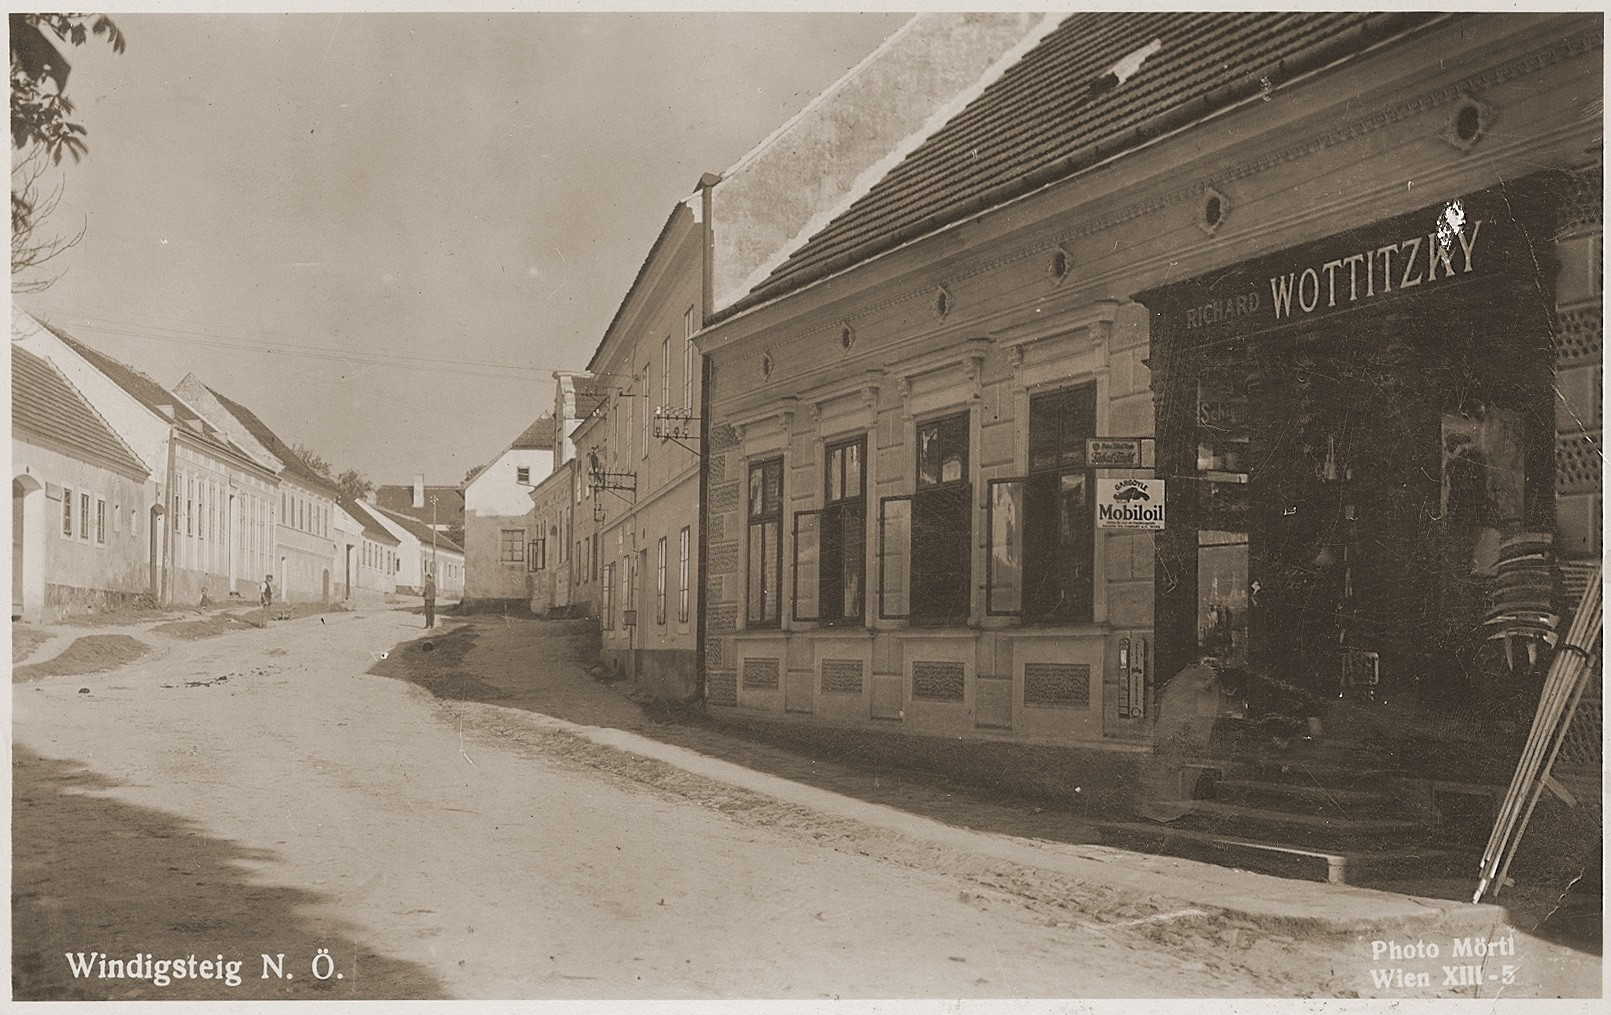 Picture postcard of a street in Windigsteig, Austria, featuring the Wottitzky family general store.